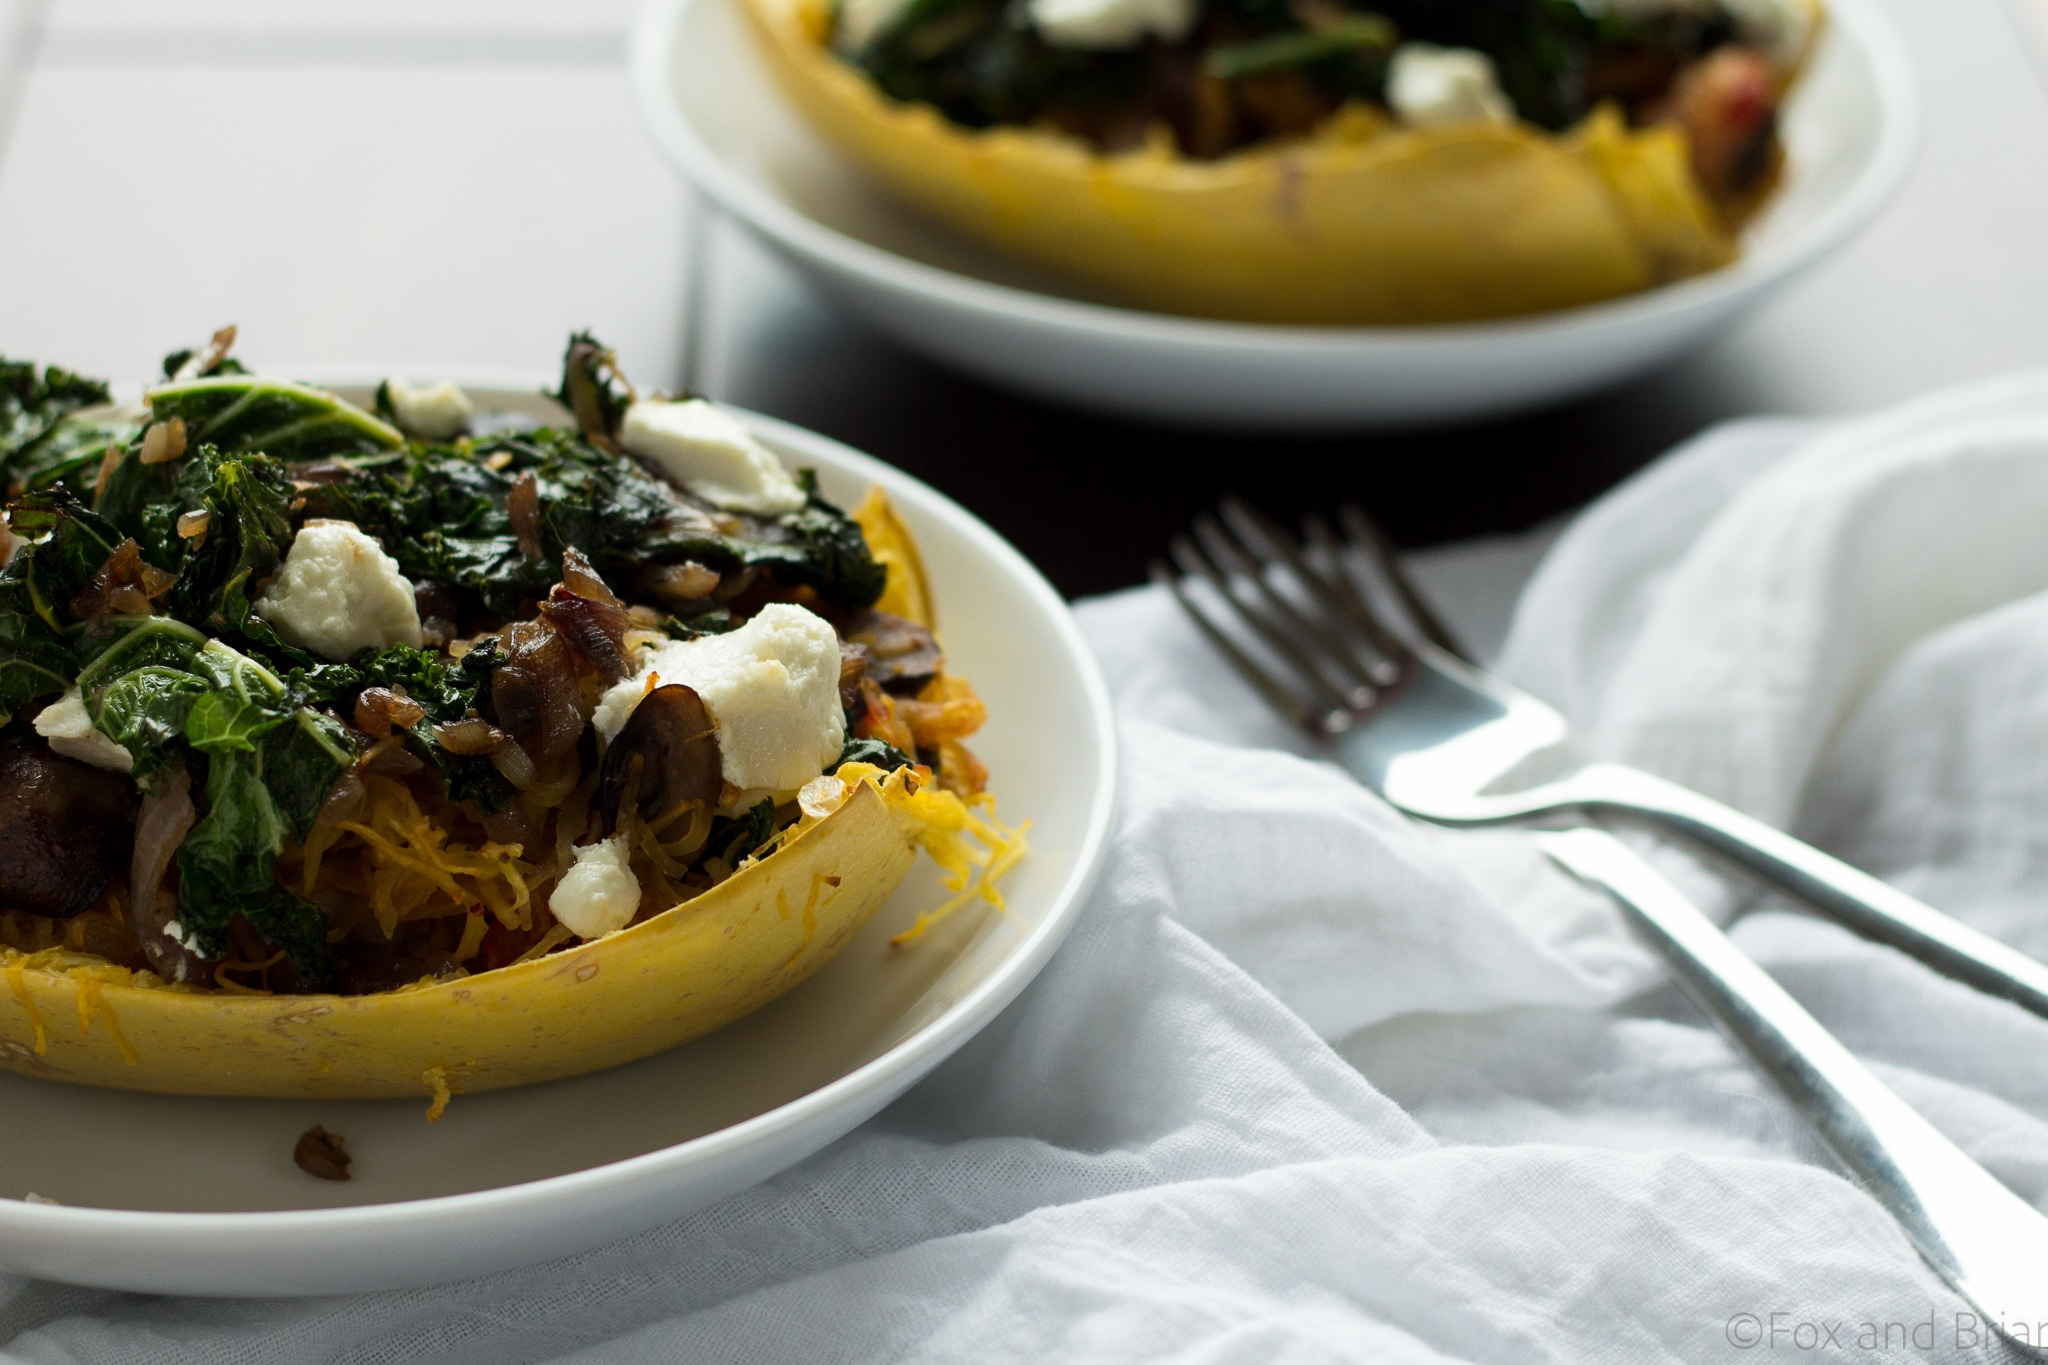 These veggie spaghetti squash boats are vegetarian, with kale, mushrooms and goat cheese. So packed with flavor and super healthy!